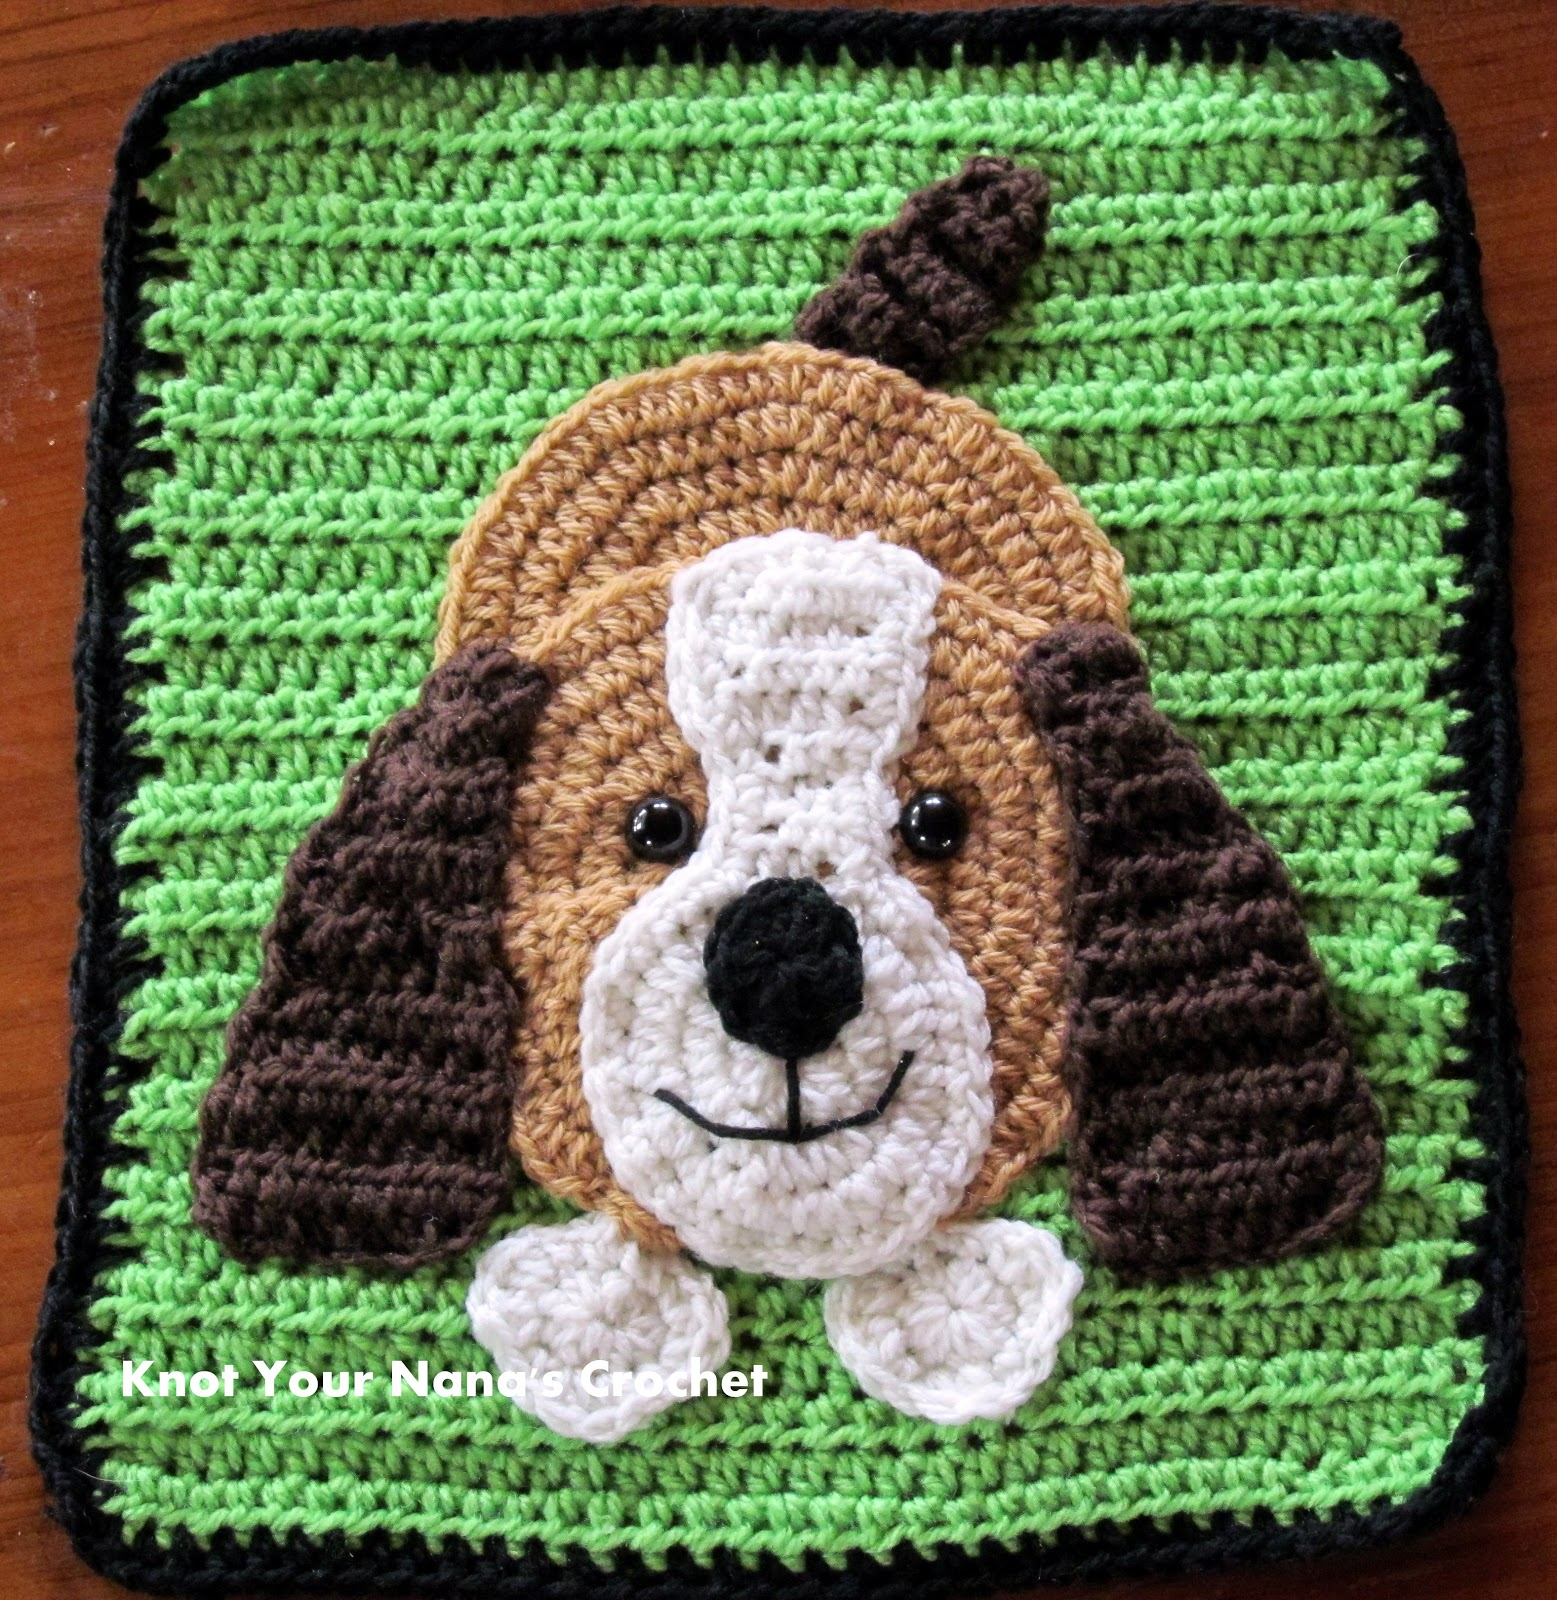 Crochet Pattern For Dog Blanket : Knot Your Nanas Crochet: Farm Blanket